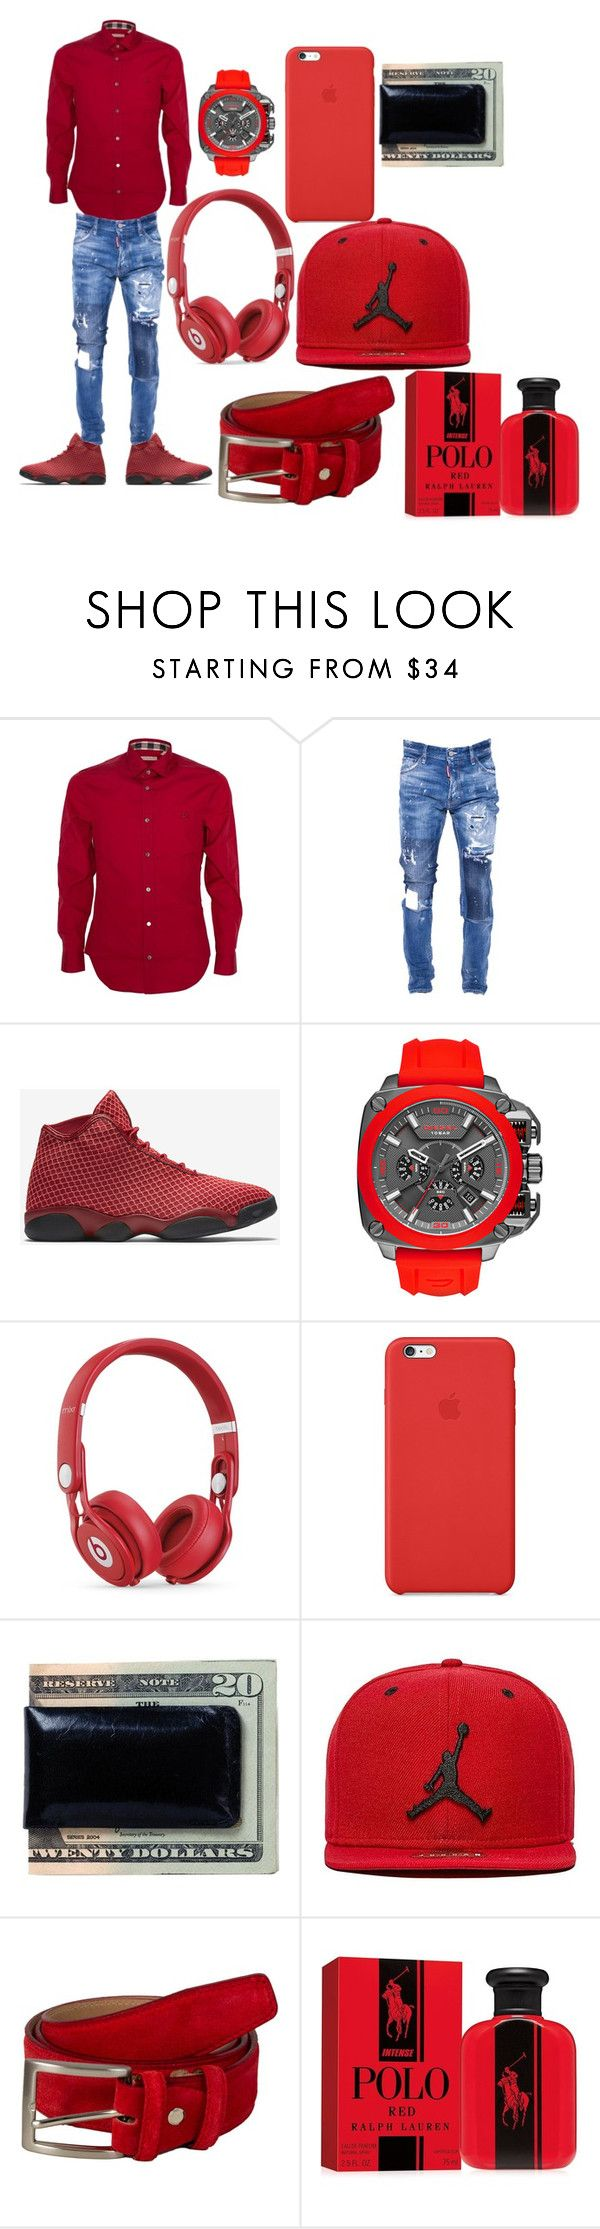 cool off by trebian ❤ liked on Polyvore featuring Burberry, Dsquared2, NIKE, Diesel, Beats by Dr. Dre, Apple, Moore Giles, Jordan Brand, Ralph Lauren and mens fashion